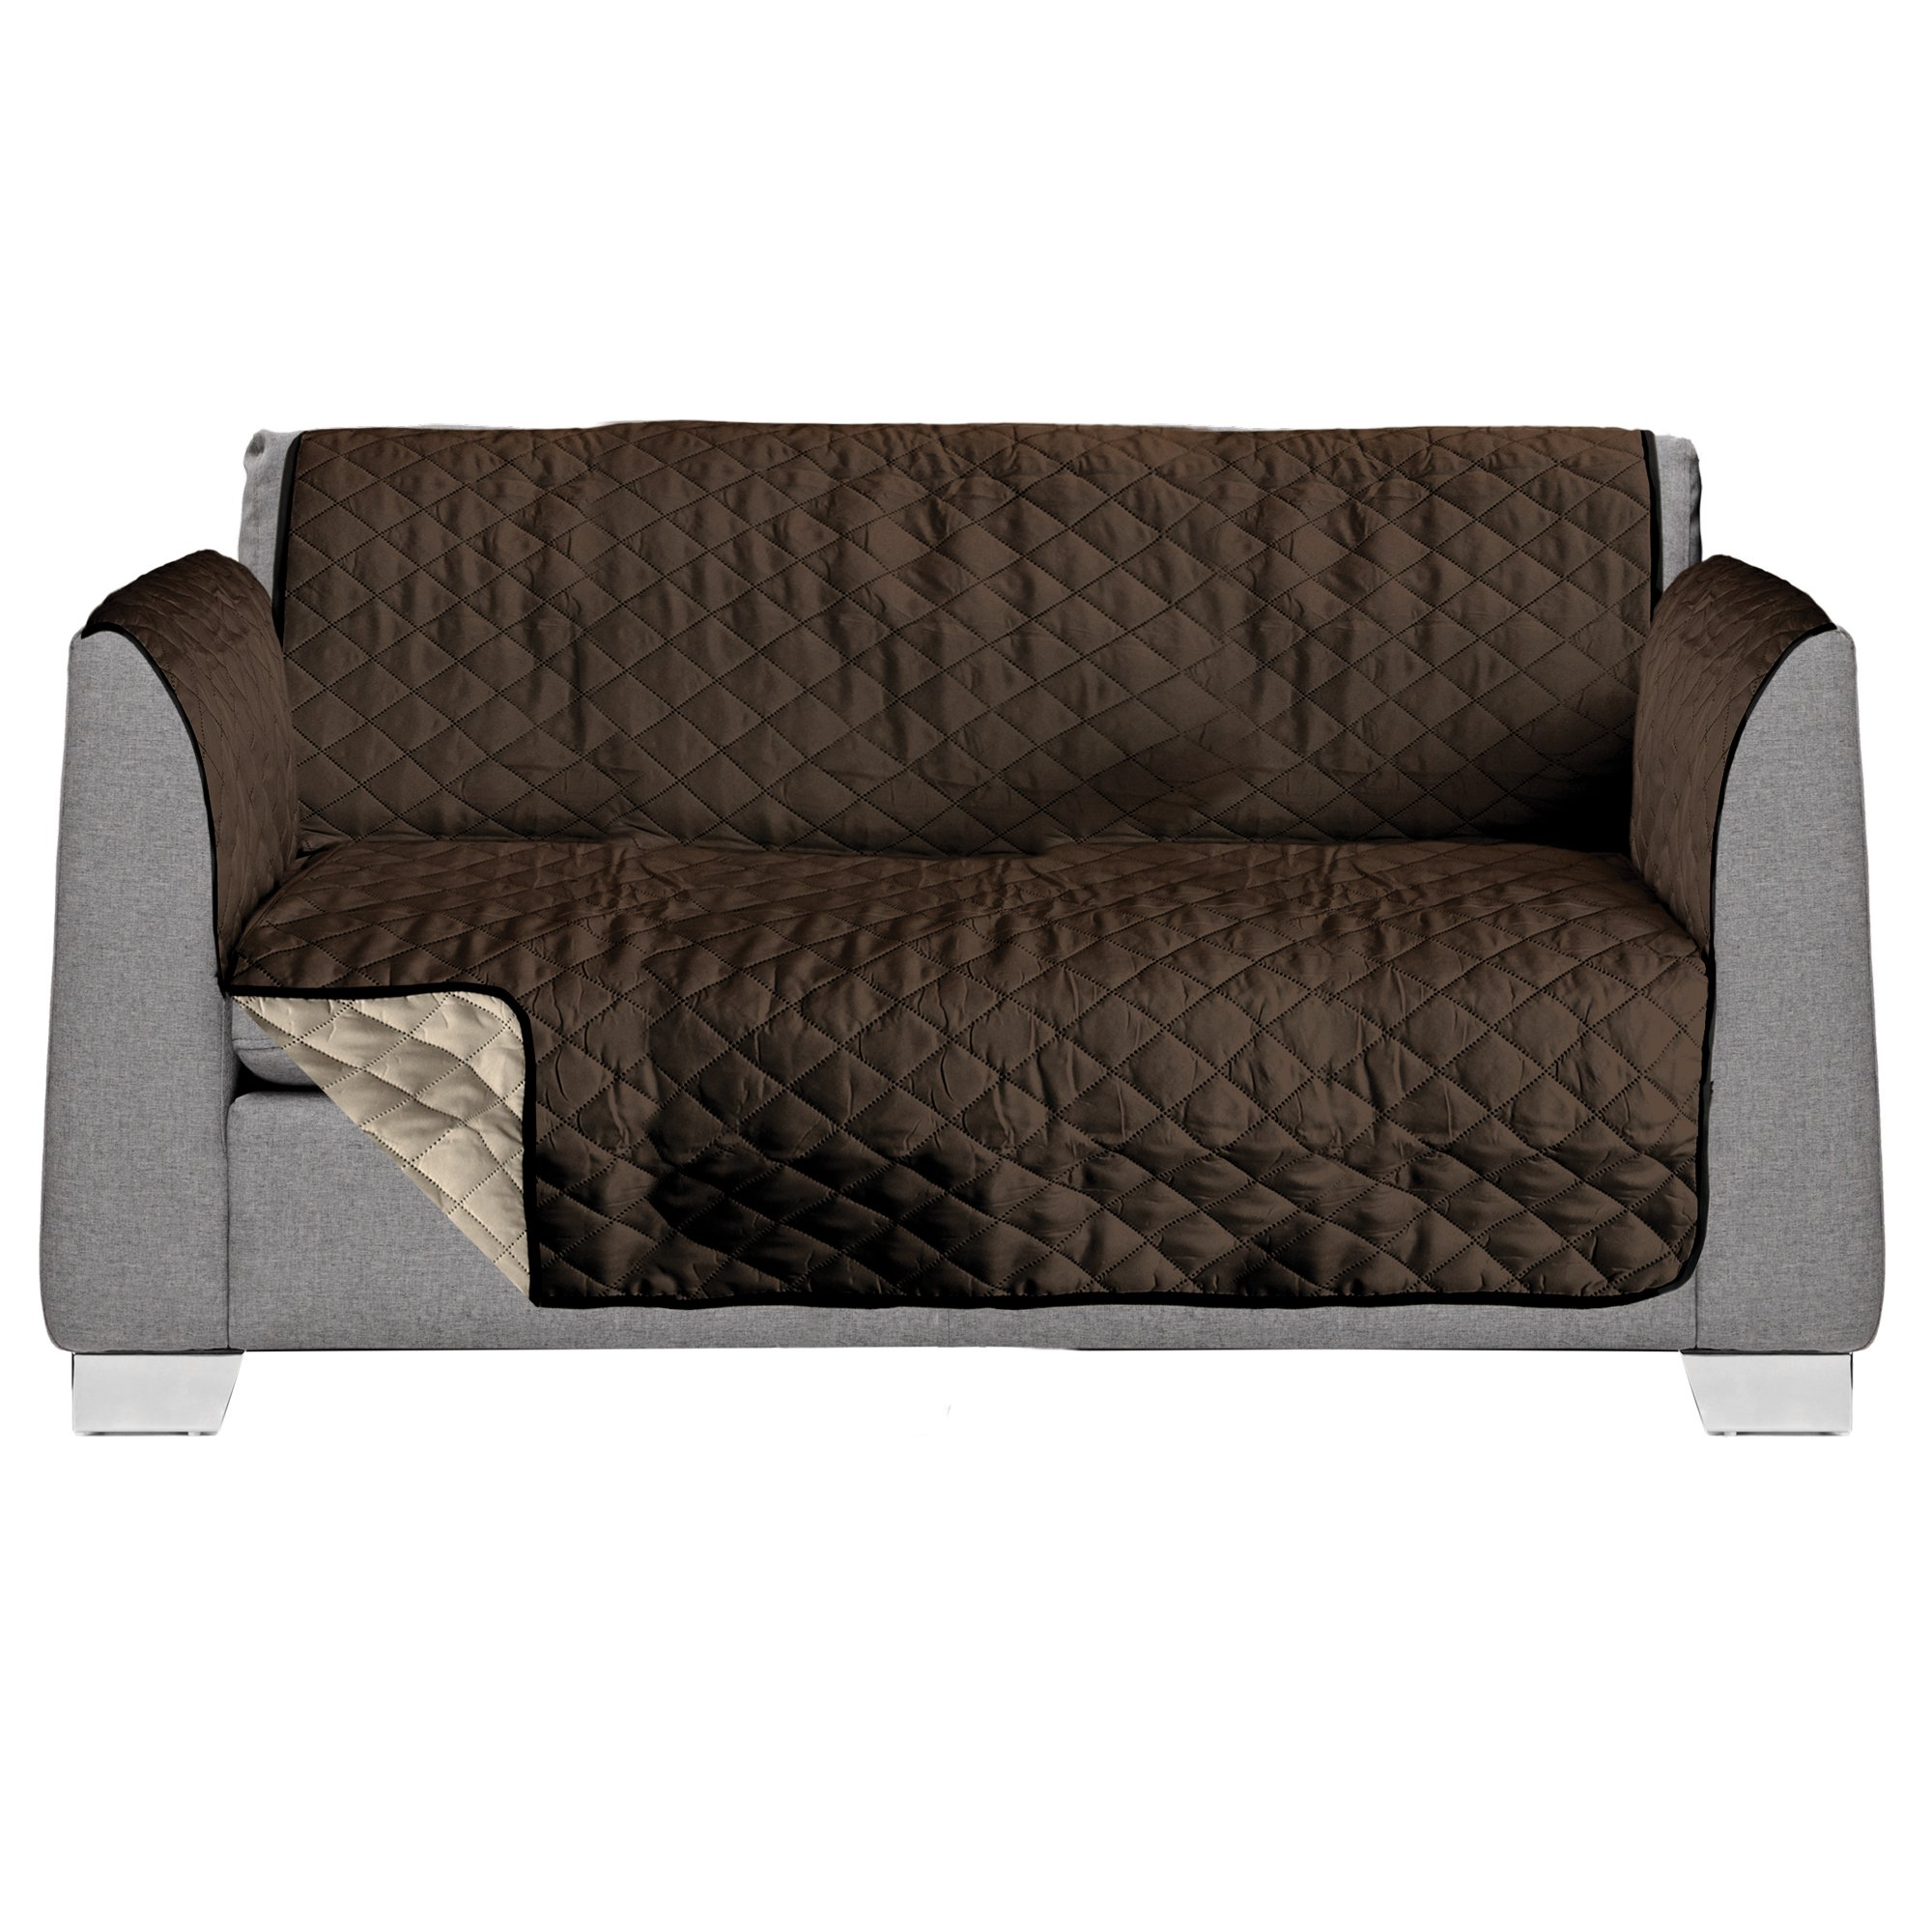 AKC Quilted Pet Love Seat Cover